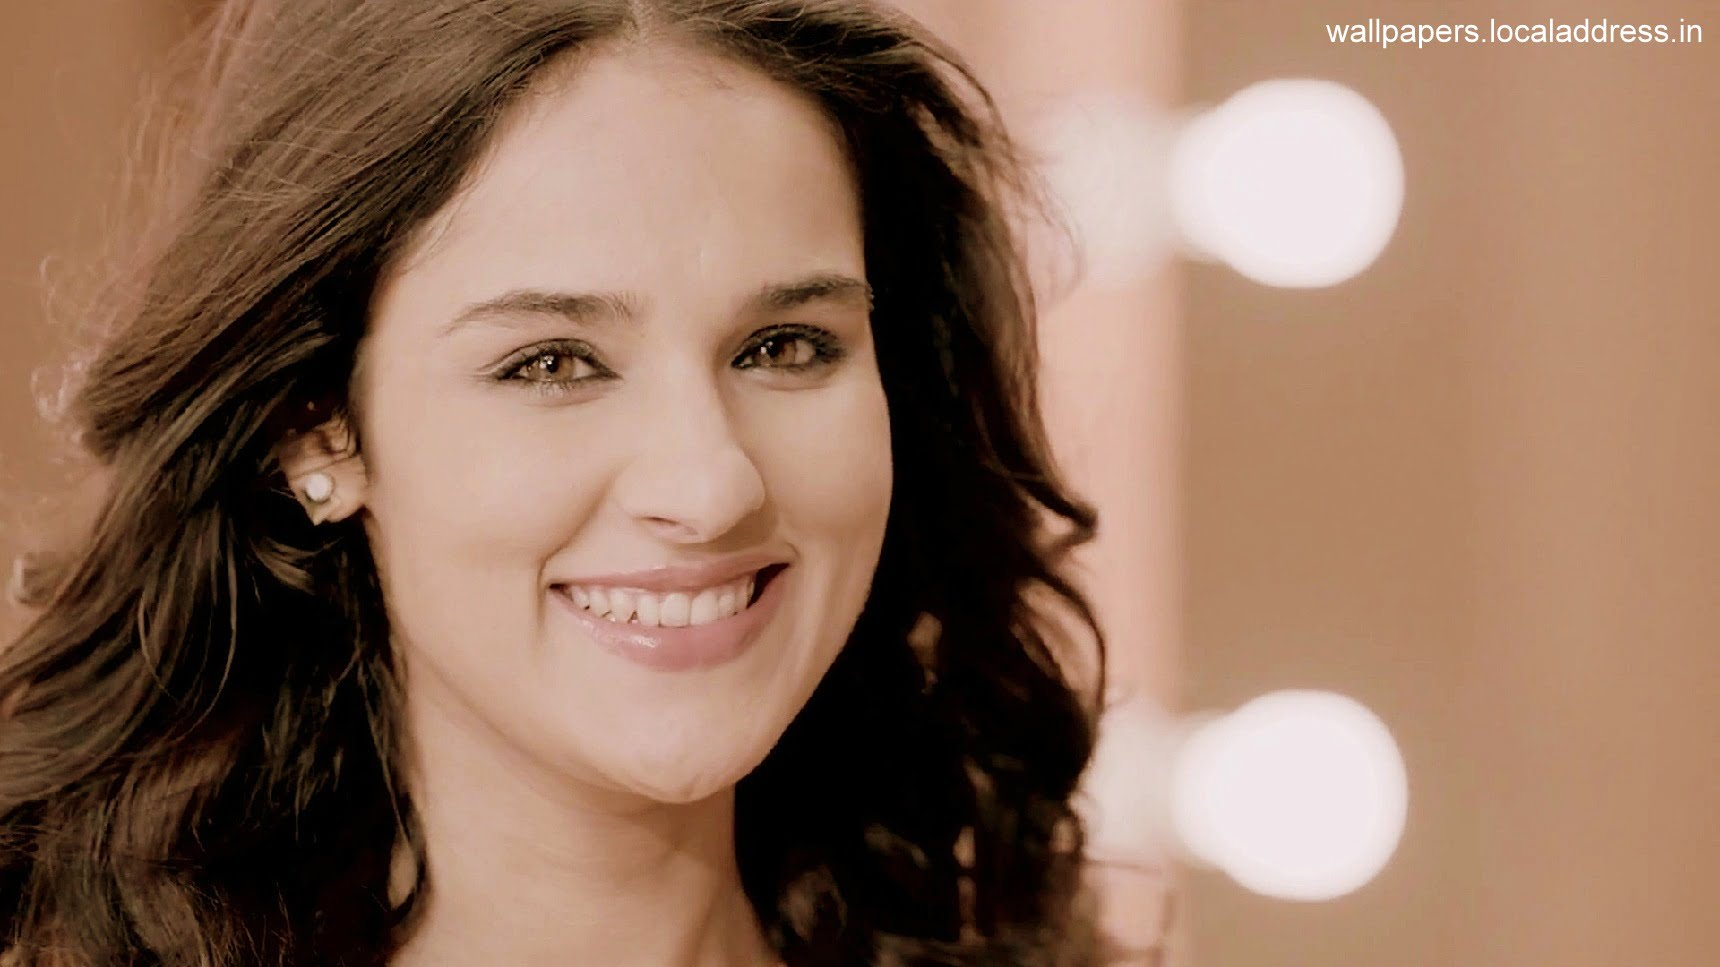 26_12_2015_11_23_45Angira Dhar Smile Images